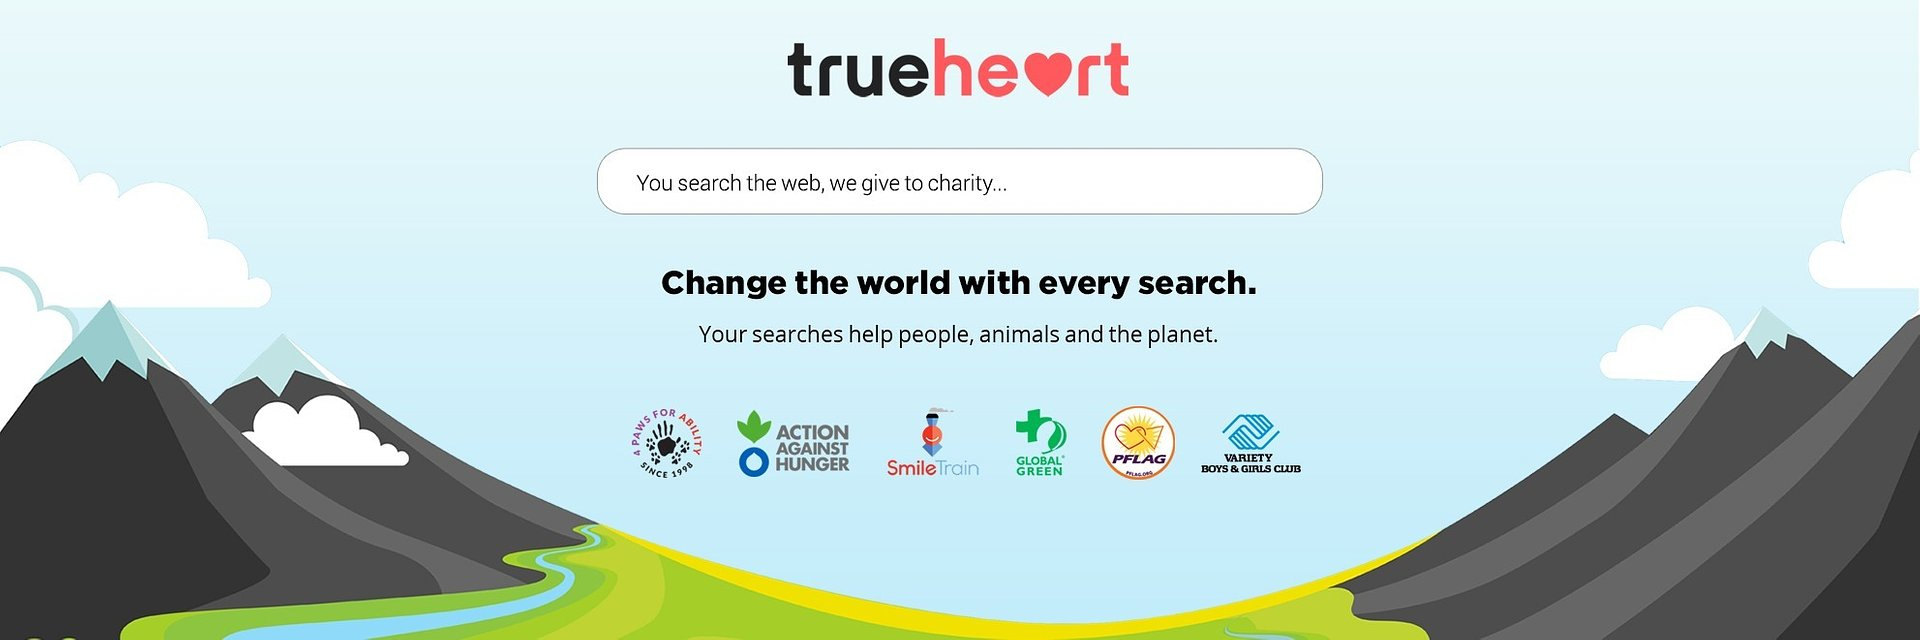 END GLOBAL HUNGER WITH EVERY SEARCH AT TRUEHEART